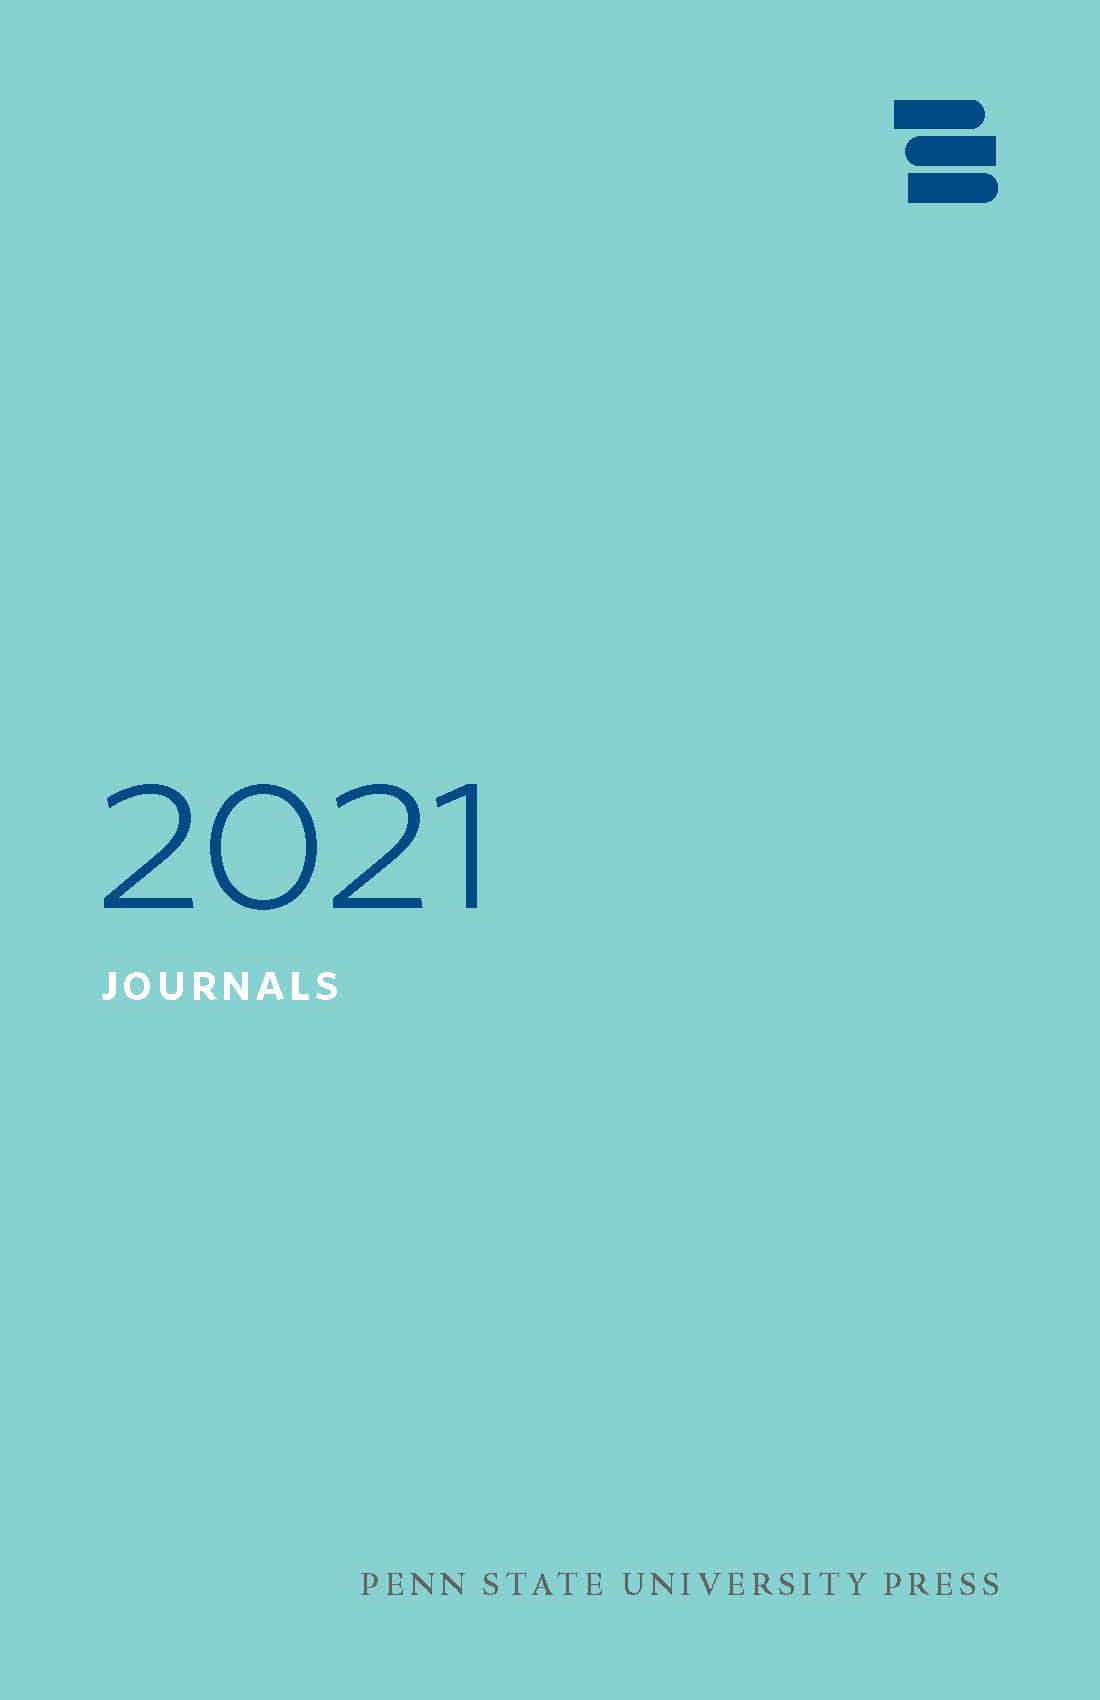 Cover for PSU Press Journals 2021